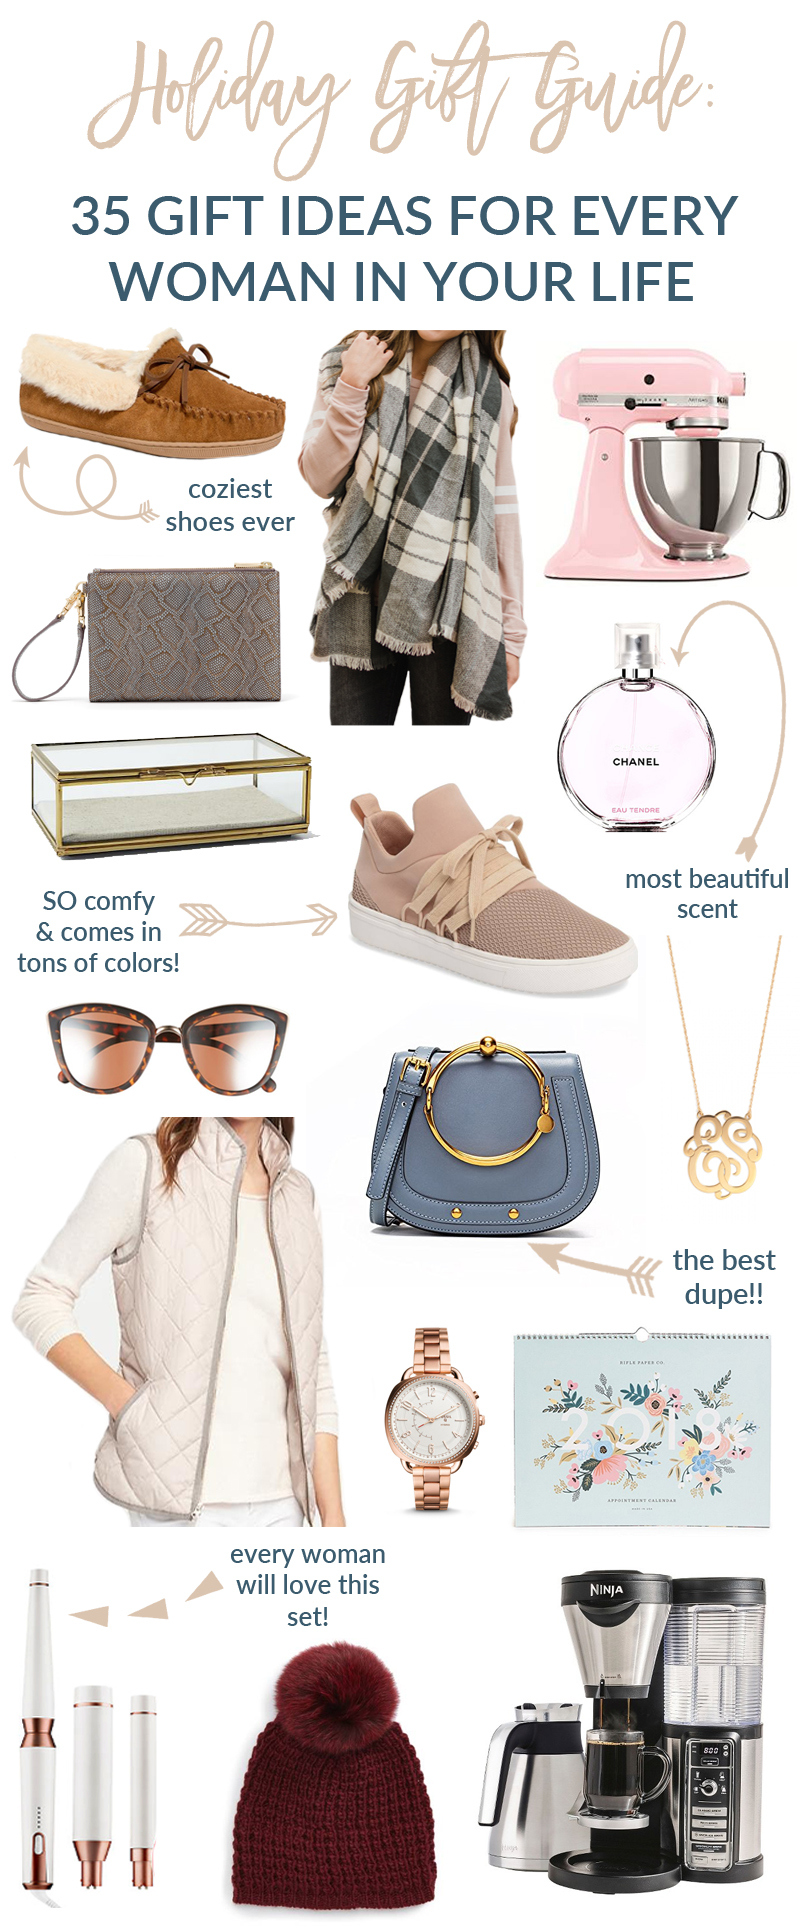 Holiday Gift Guide: 35 Gift Ideas For Every Woman In Your Life by Utah style blogger Sandy A La Mode